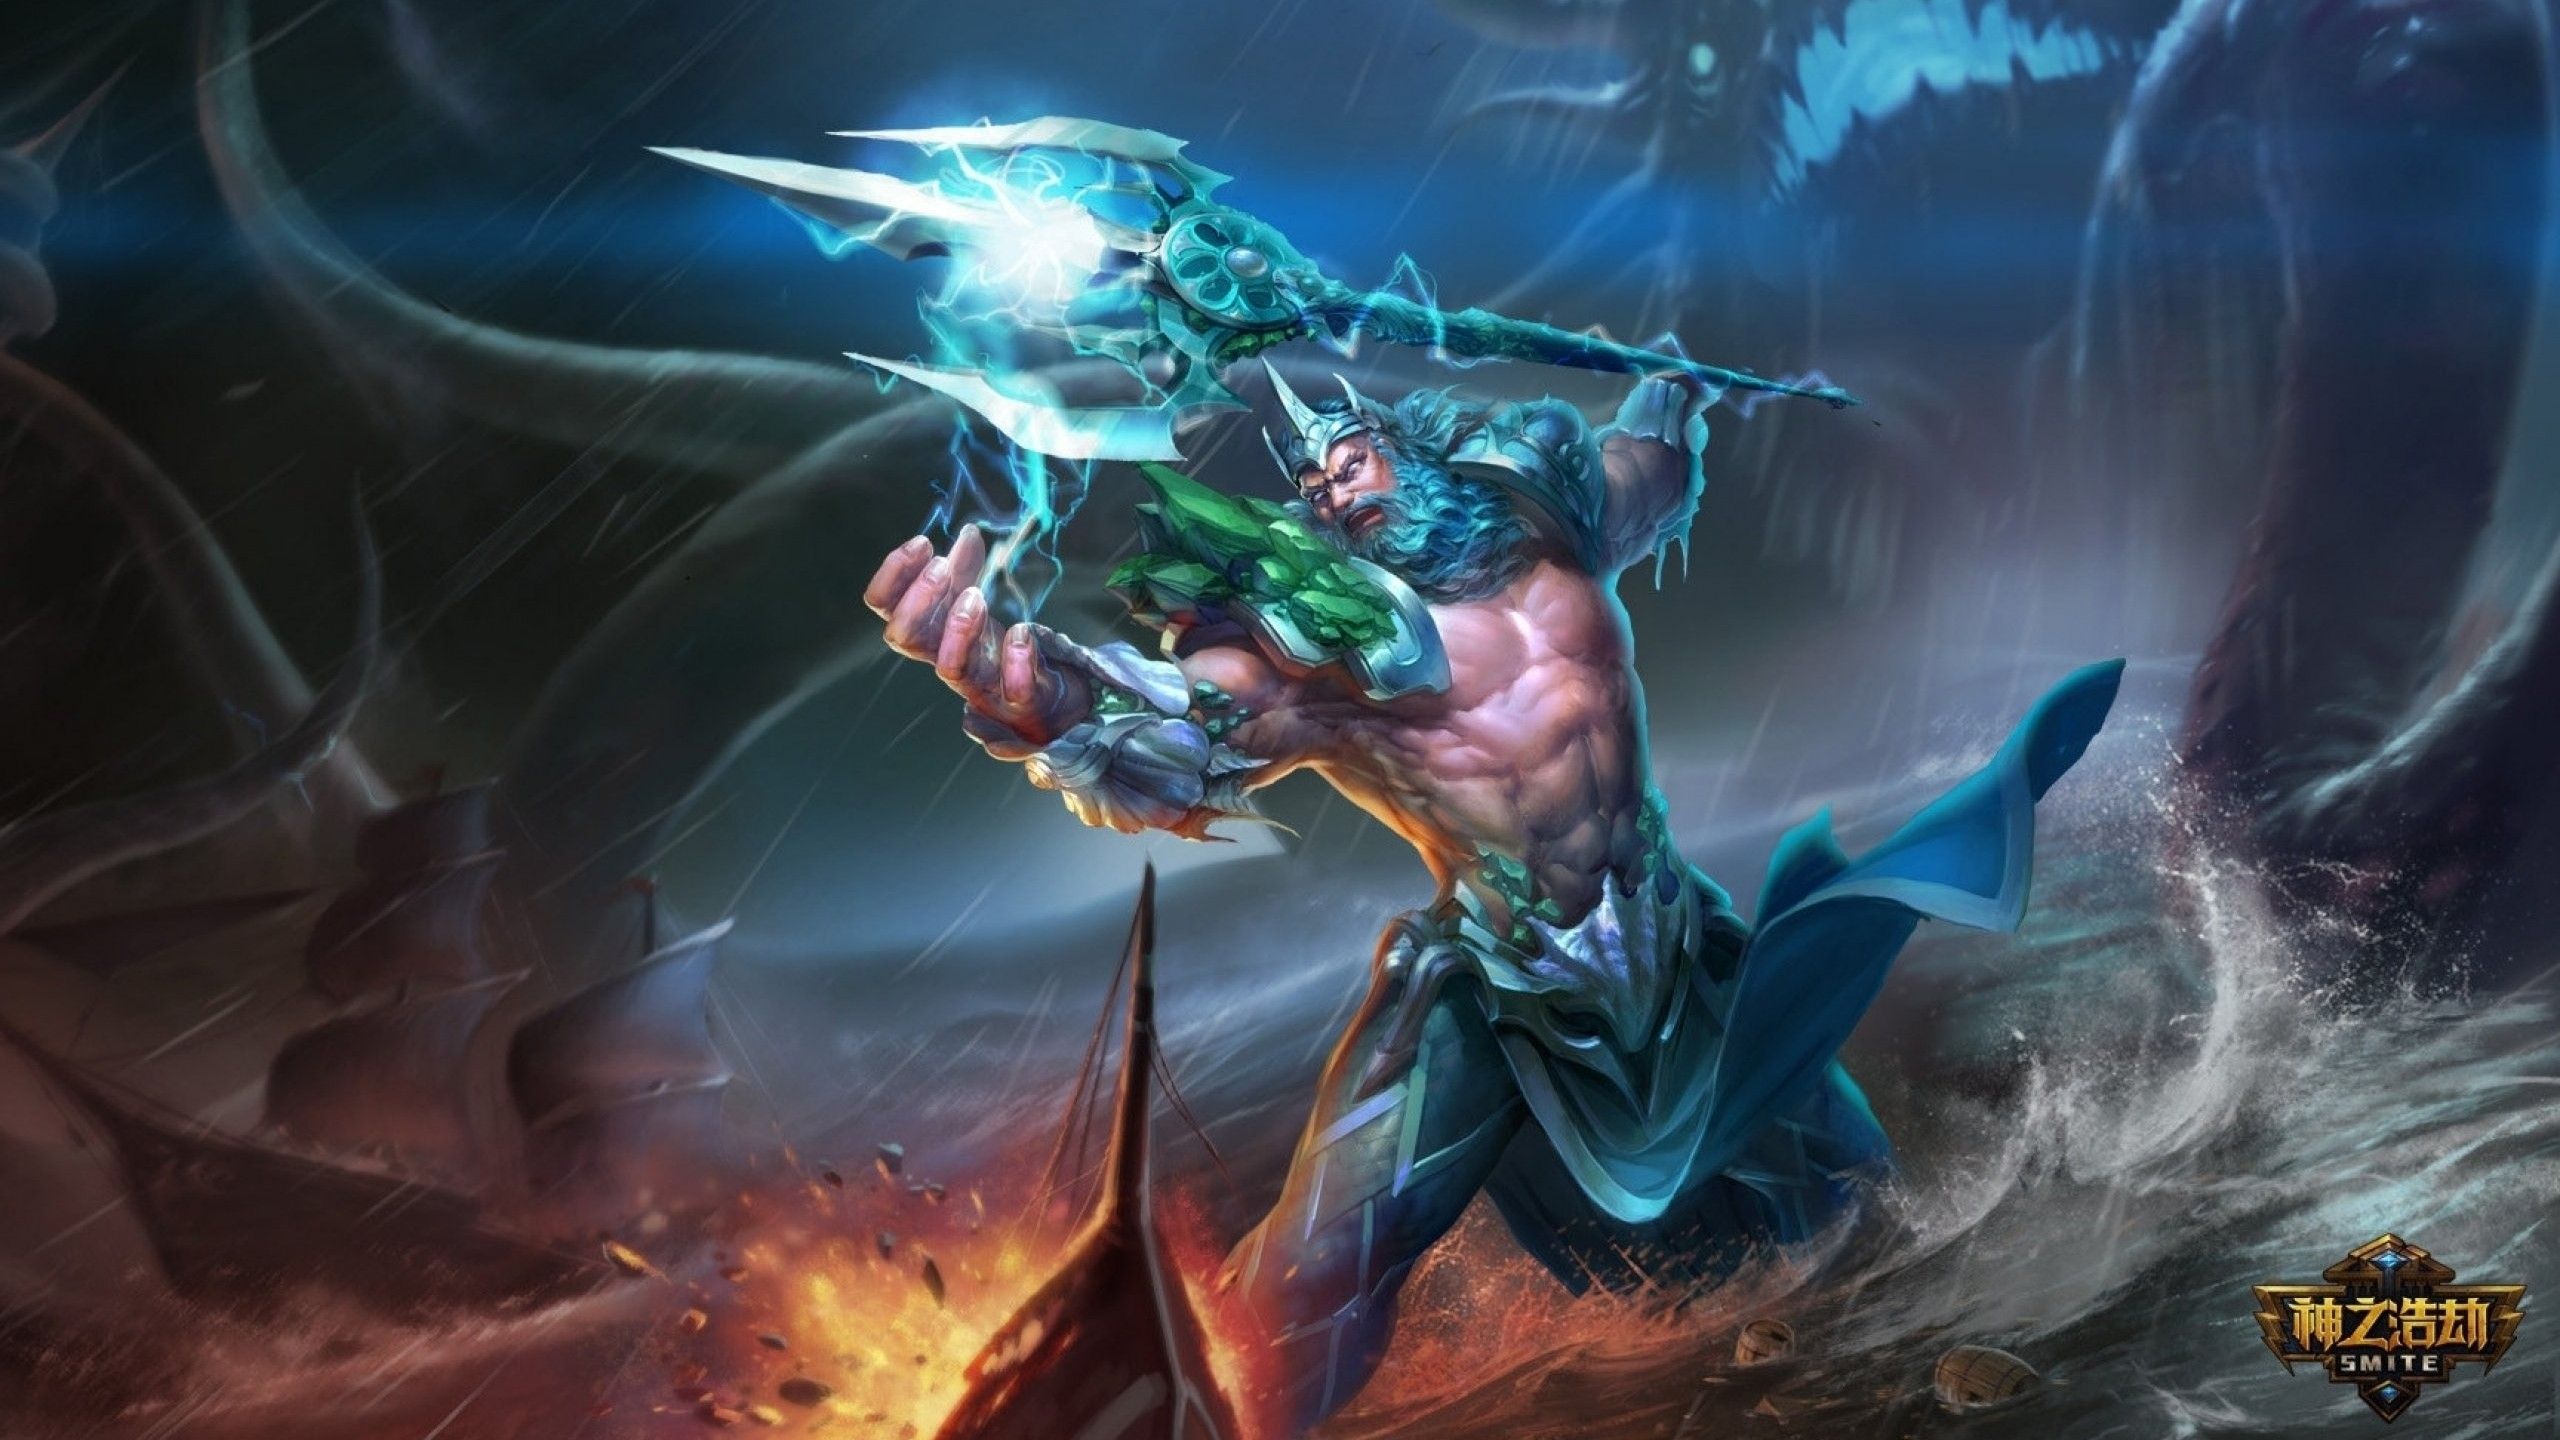 2560x1440 Top Related Wallpapers Smite Twitch Wallpapers